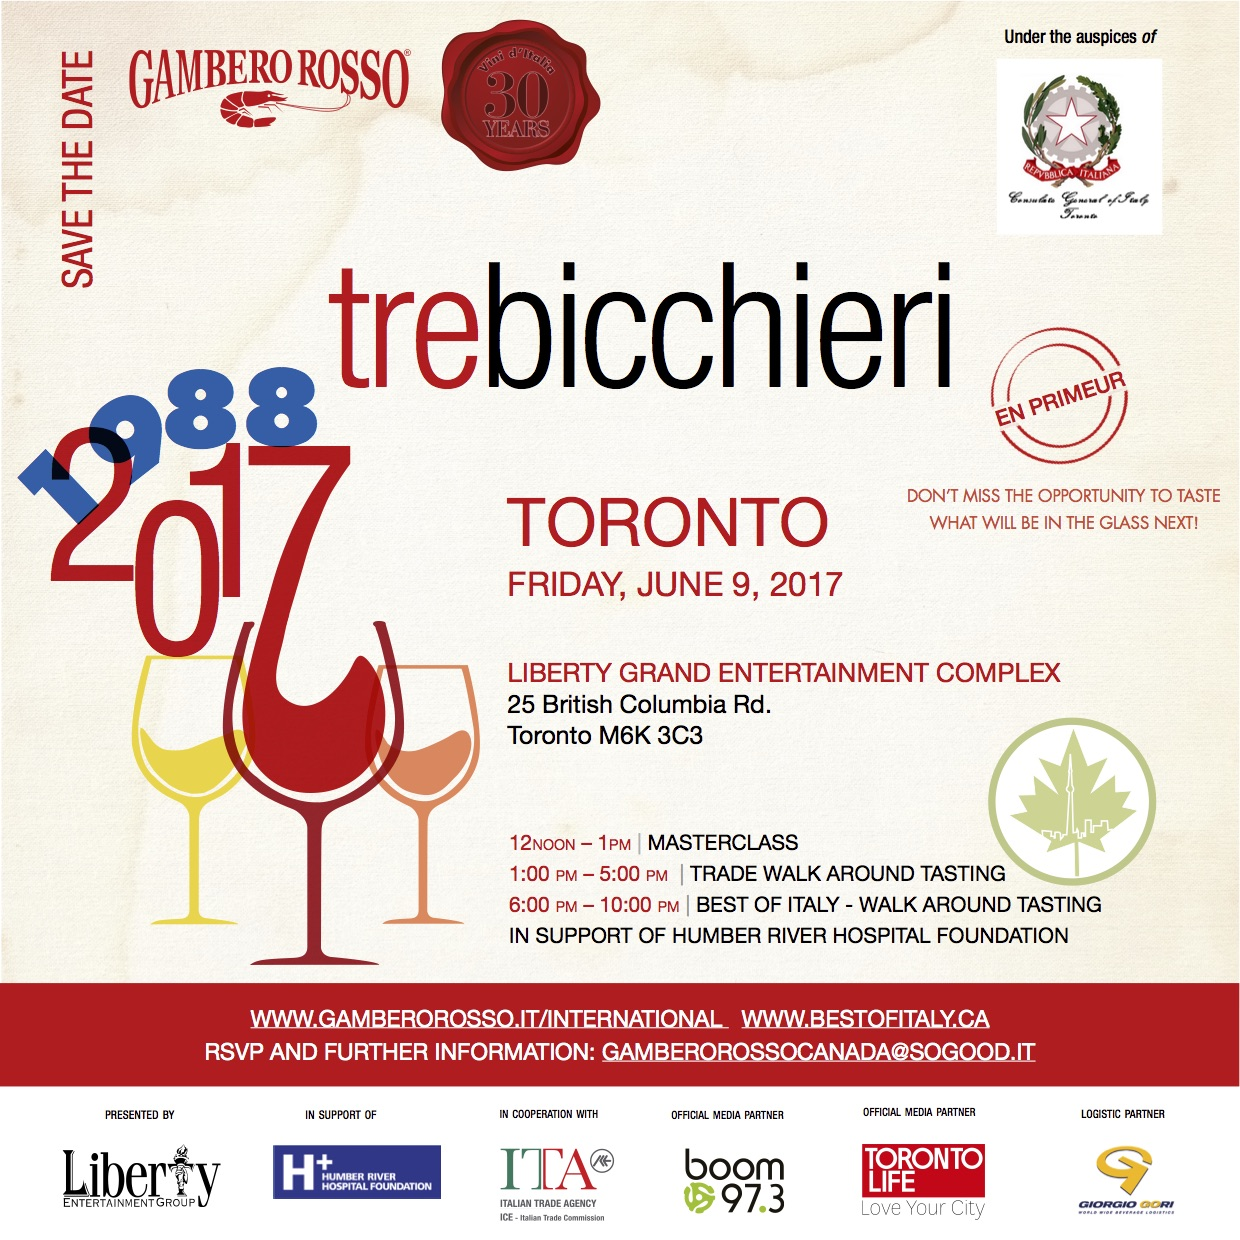 Gambero Rosso event June 9th @ Liberty Promotion